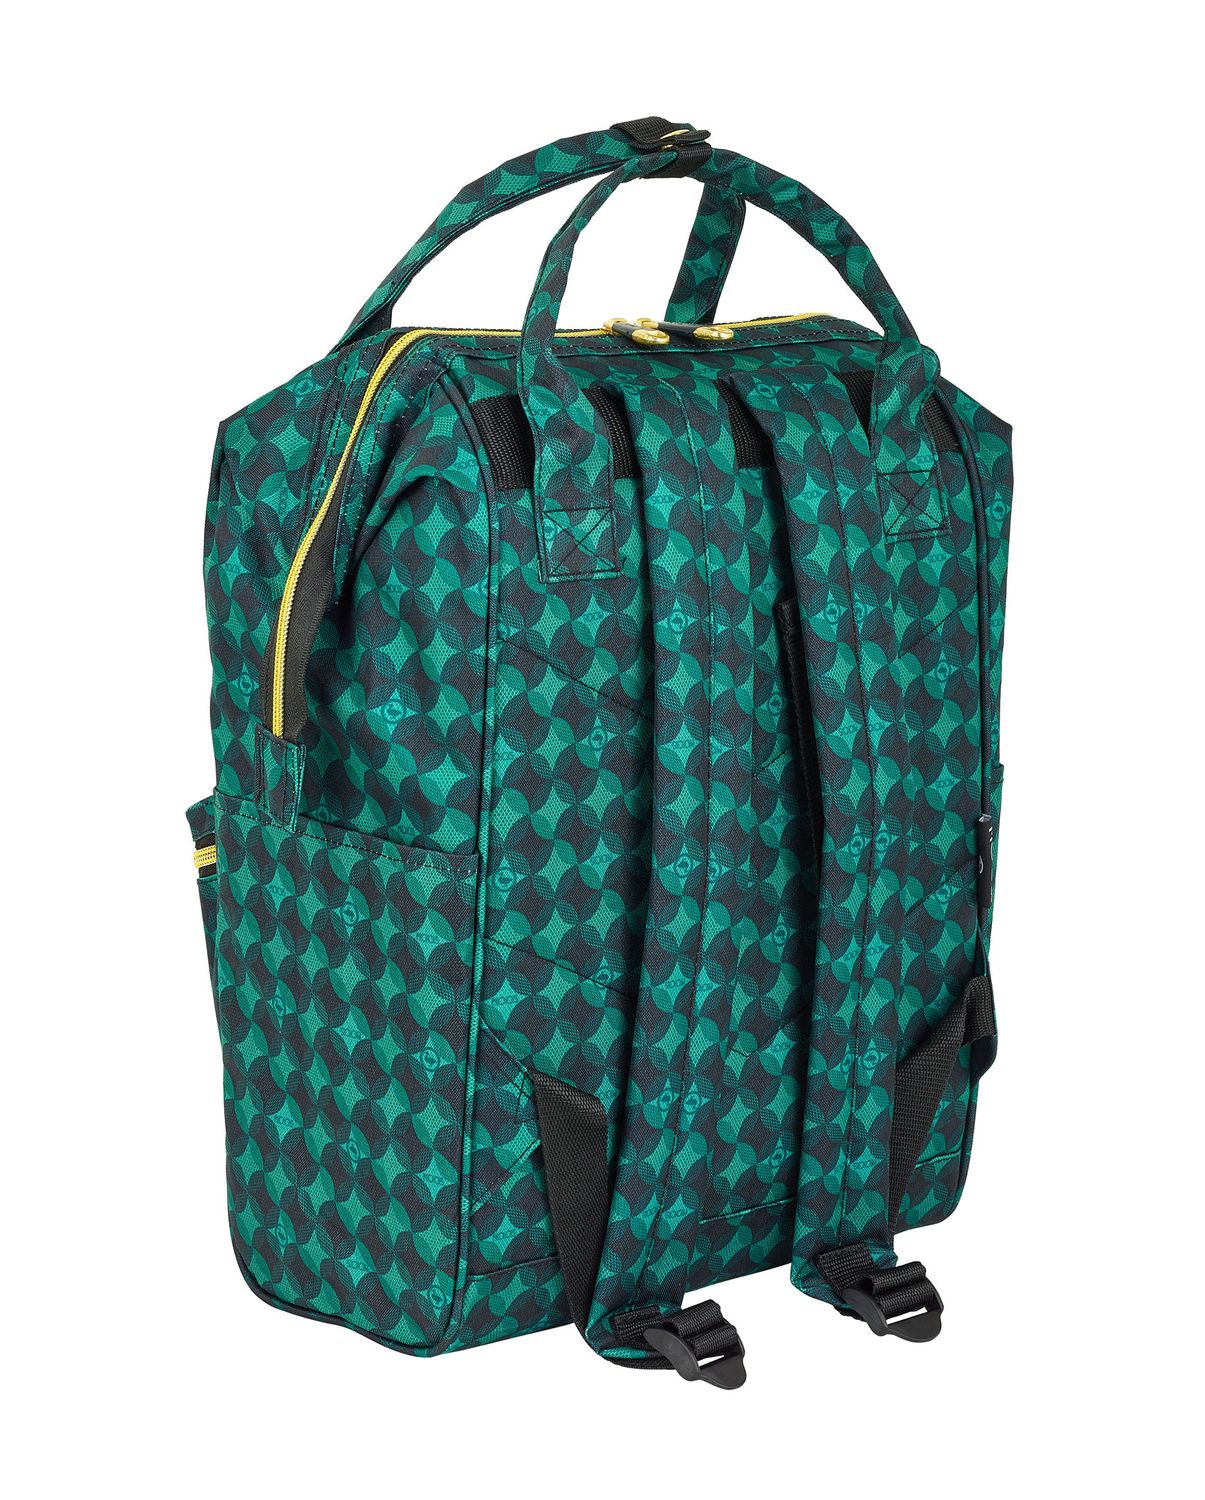 Laptop Backpack DELUXE 40 cm MOSS Geometric – image 3